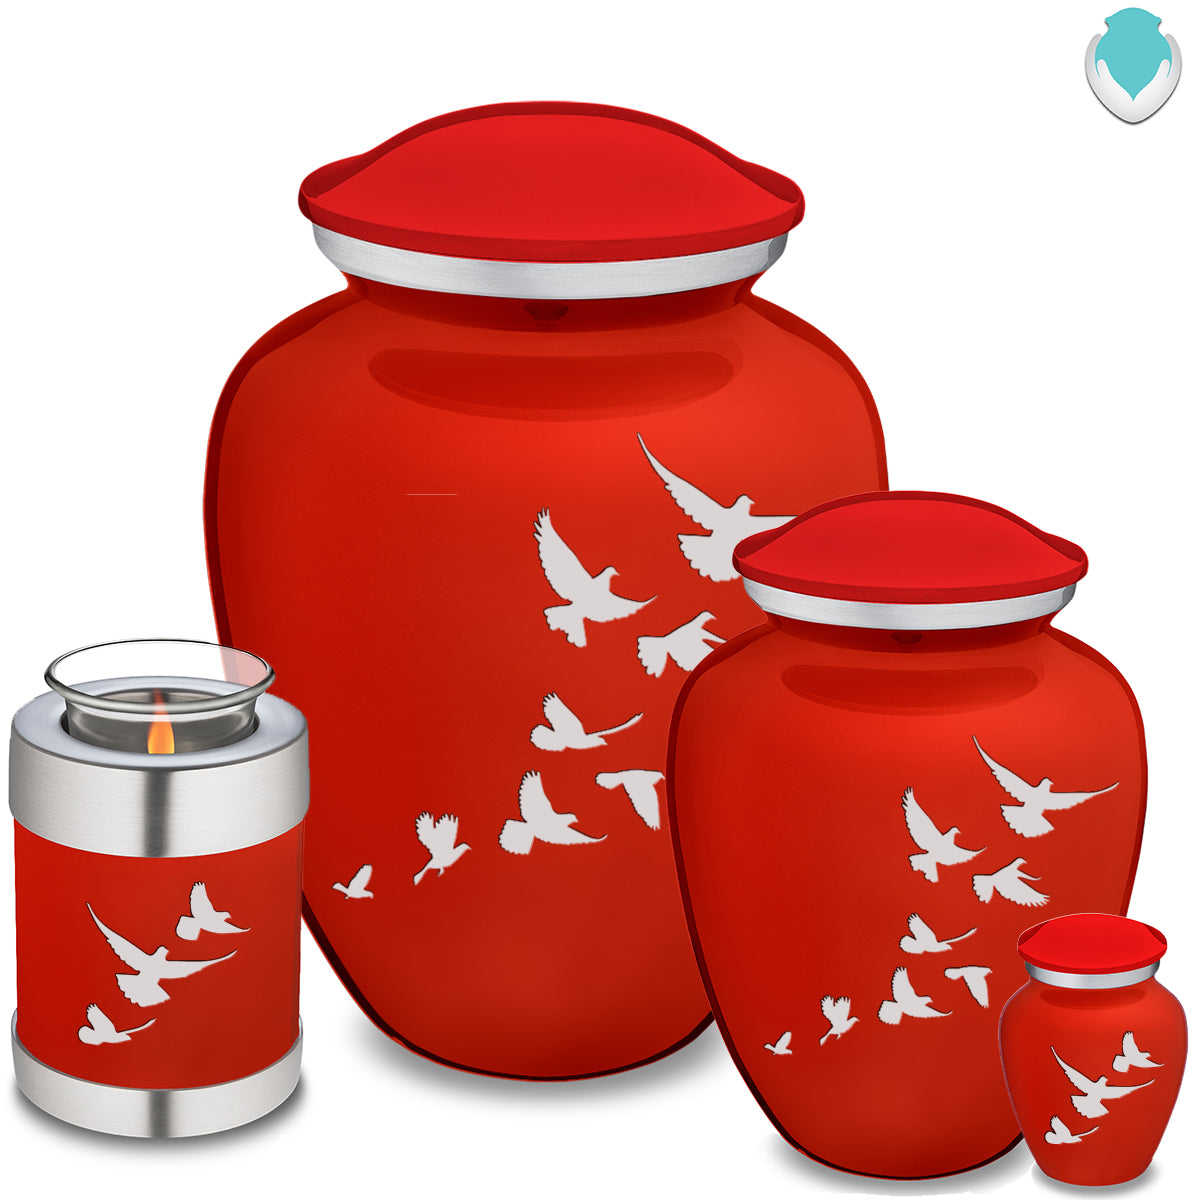 Adult Embrace Bright Red Doves Cremation Urn